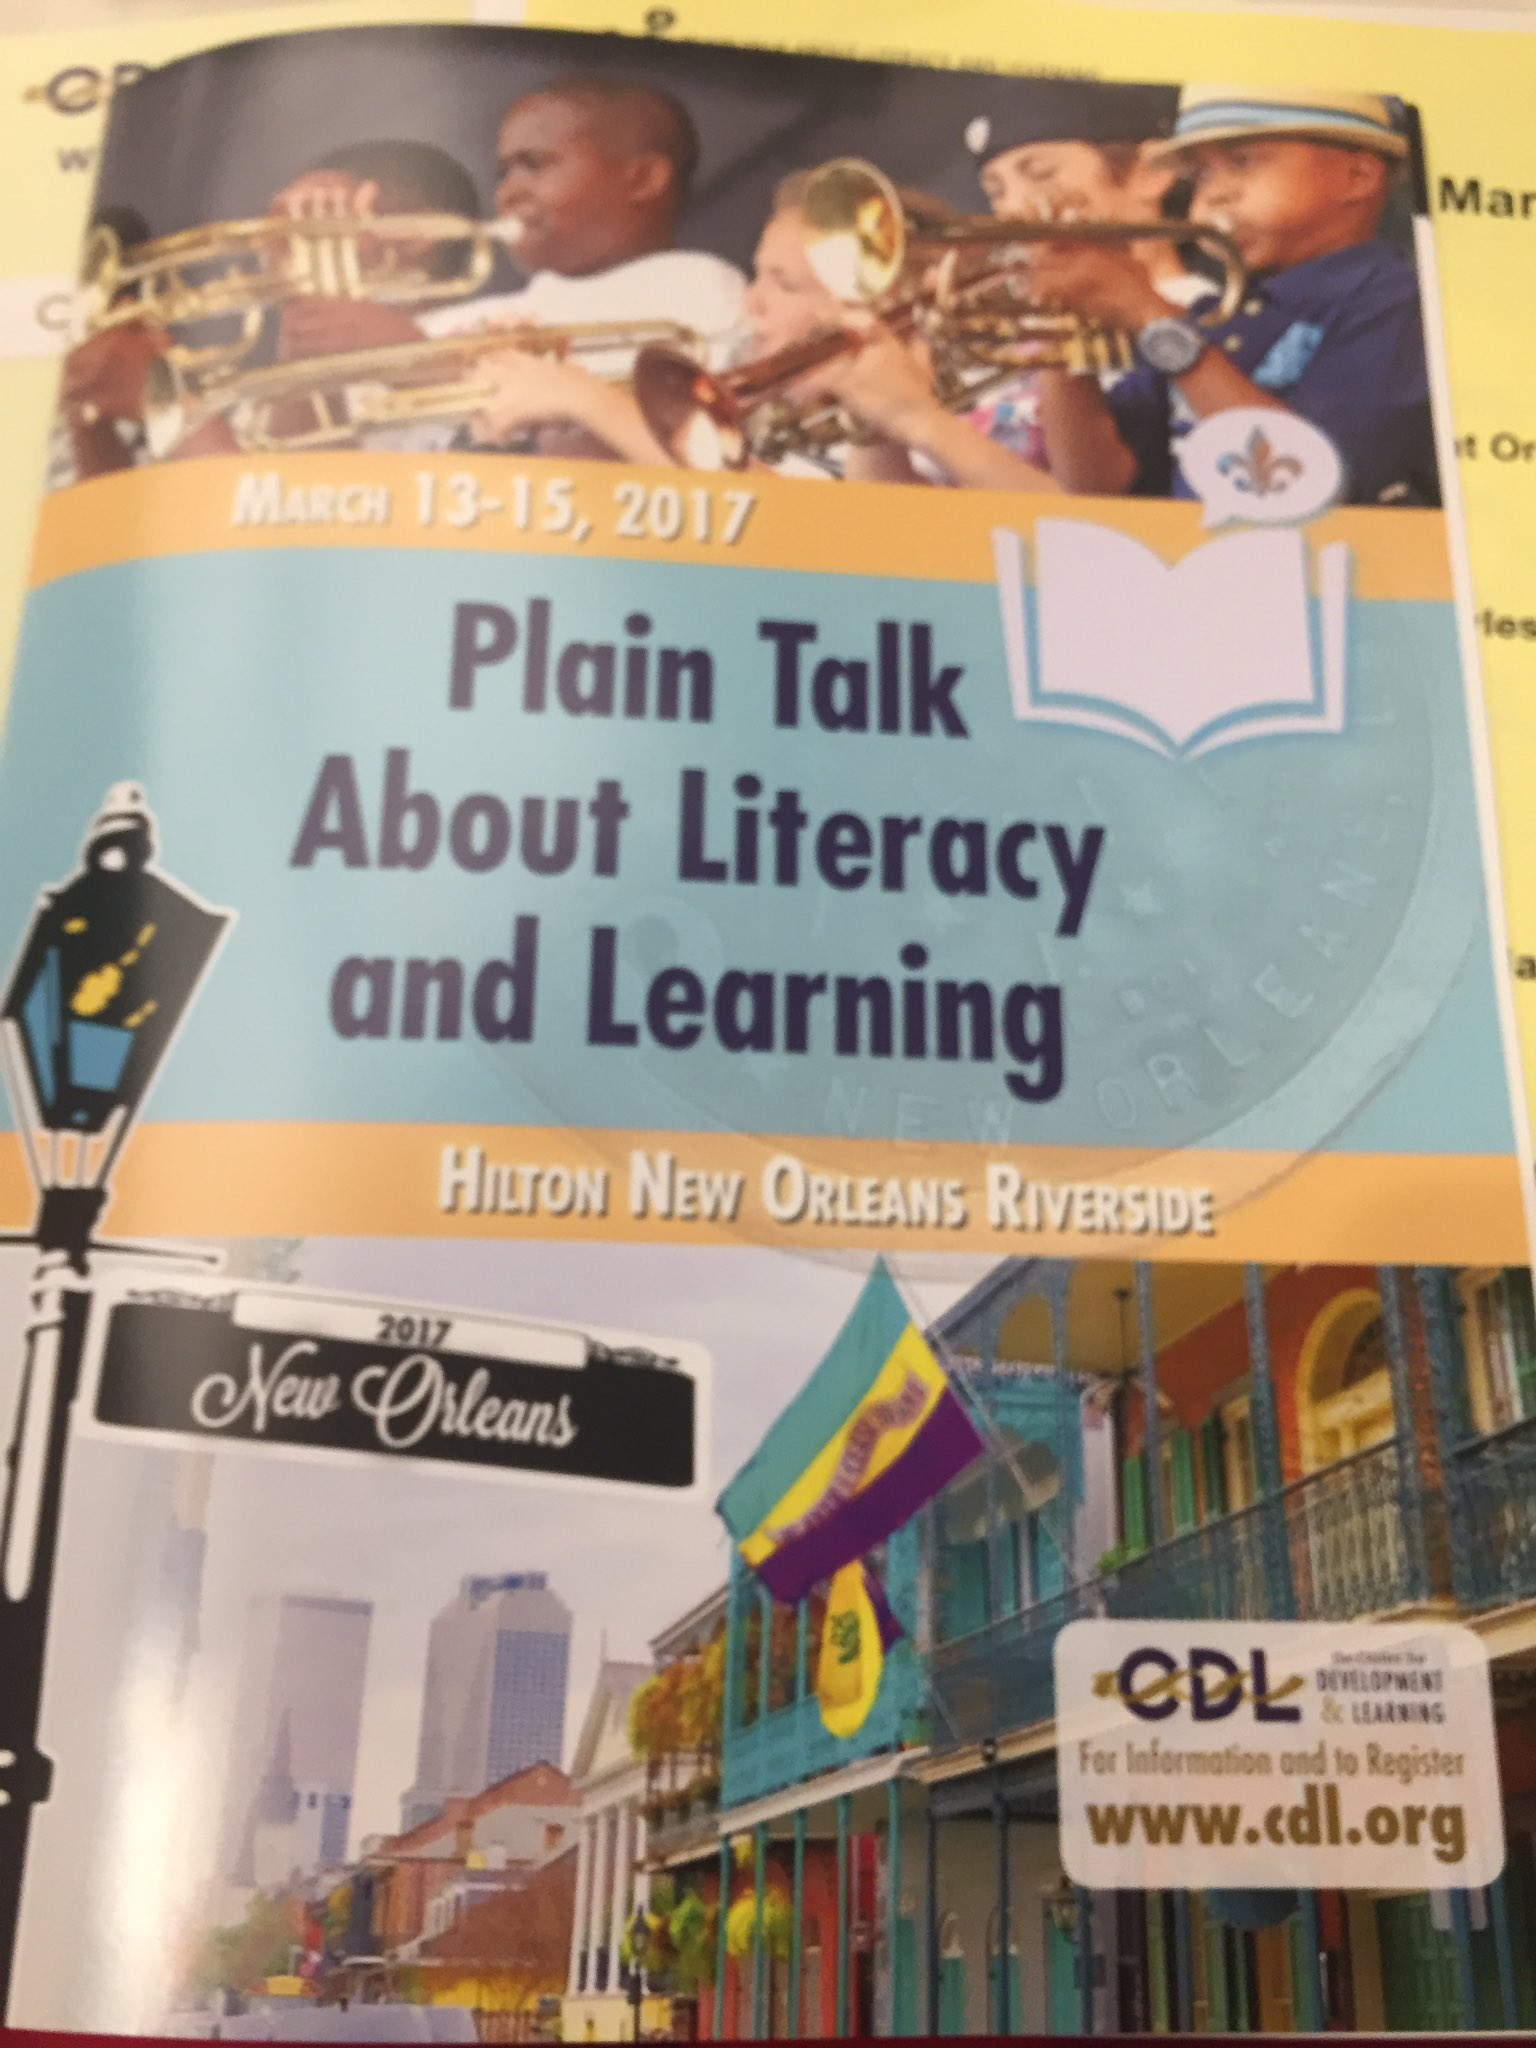 So excited to learn #plaintalknola https://t.co/YioIKsq75K